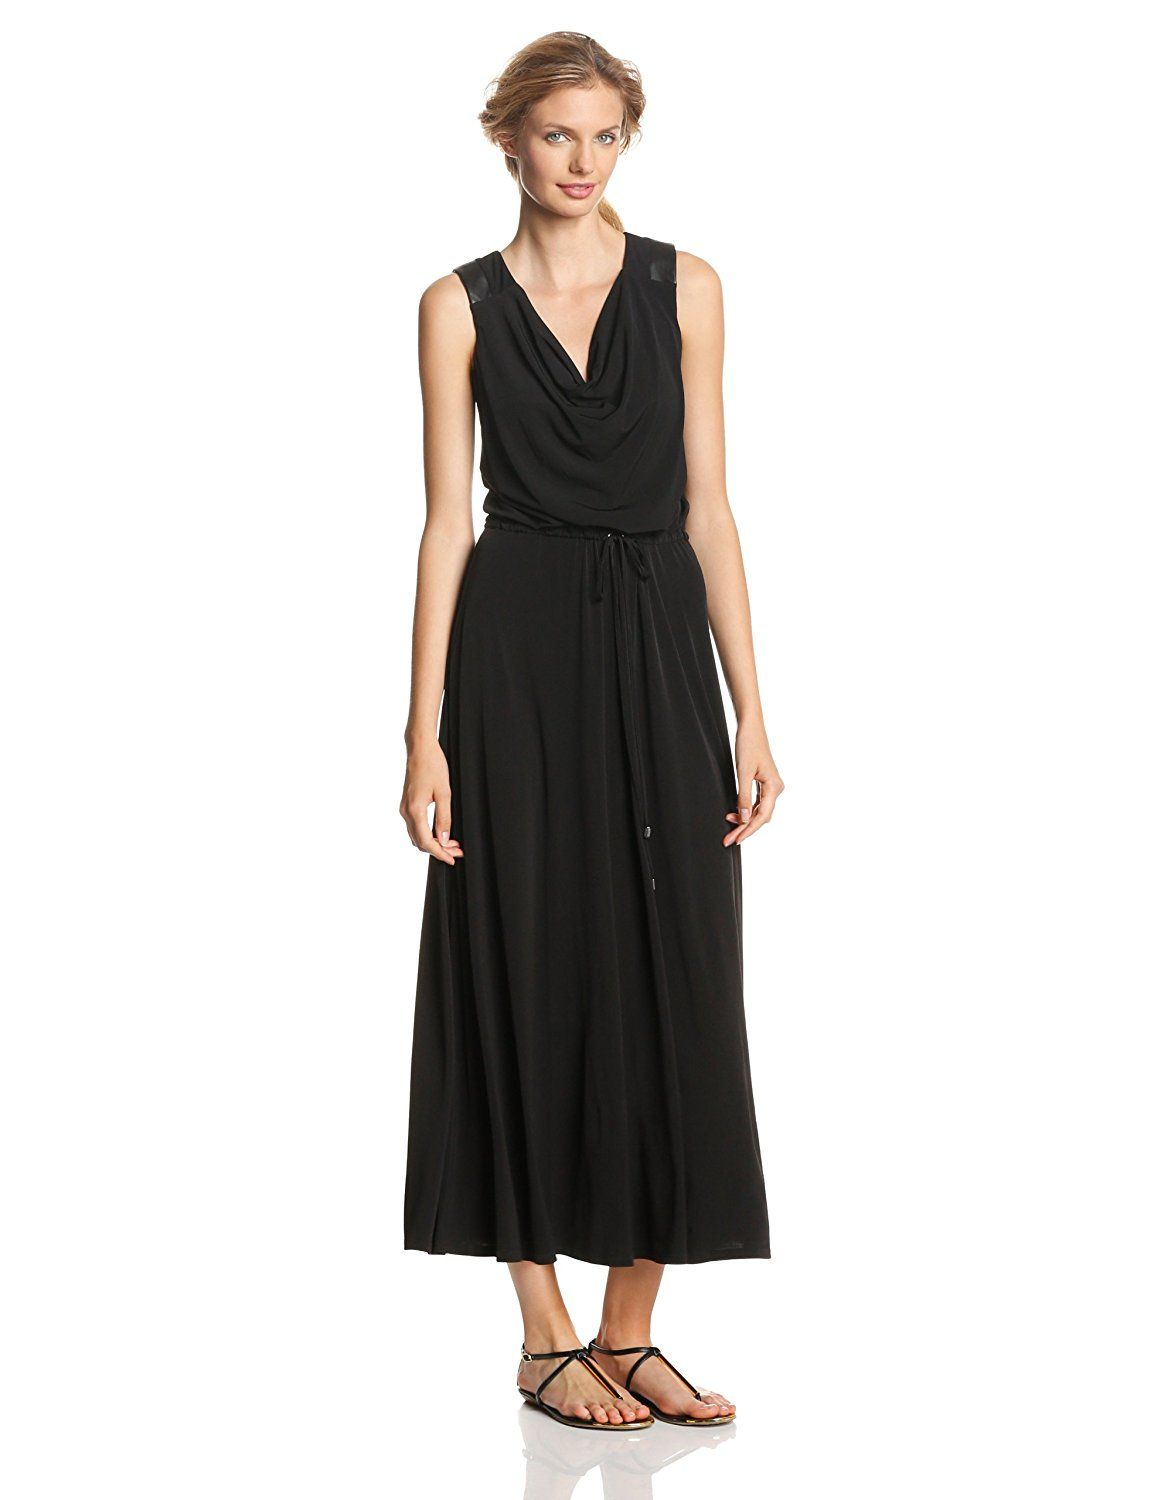 6c85ff582e5 Calvin Klein Women s Maxi Dress with Faux Leather Trim     Startling review  available here   Women s dresses